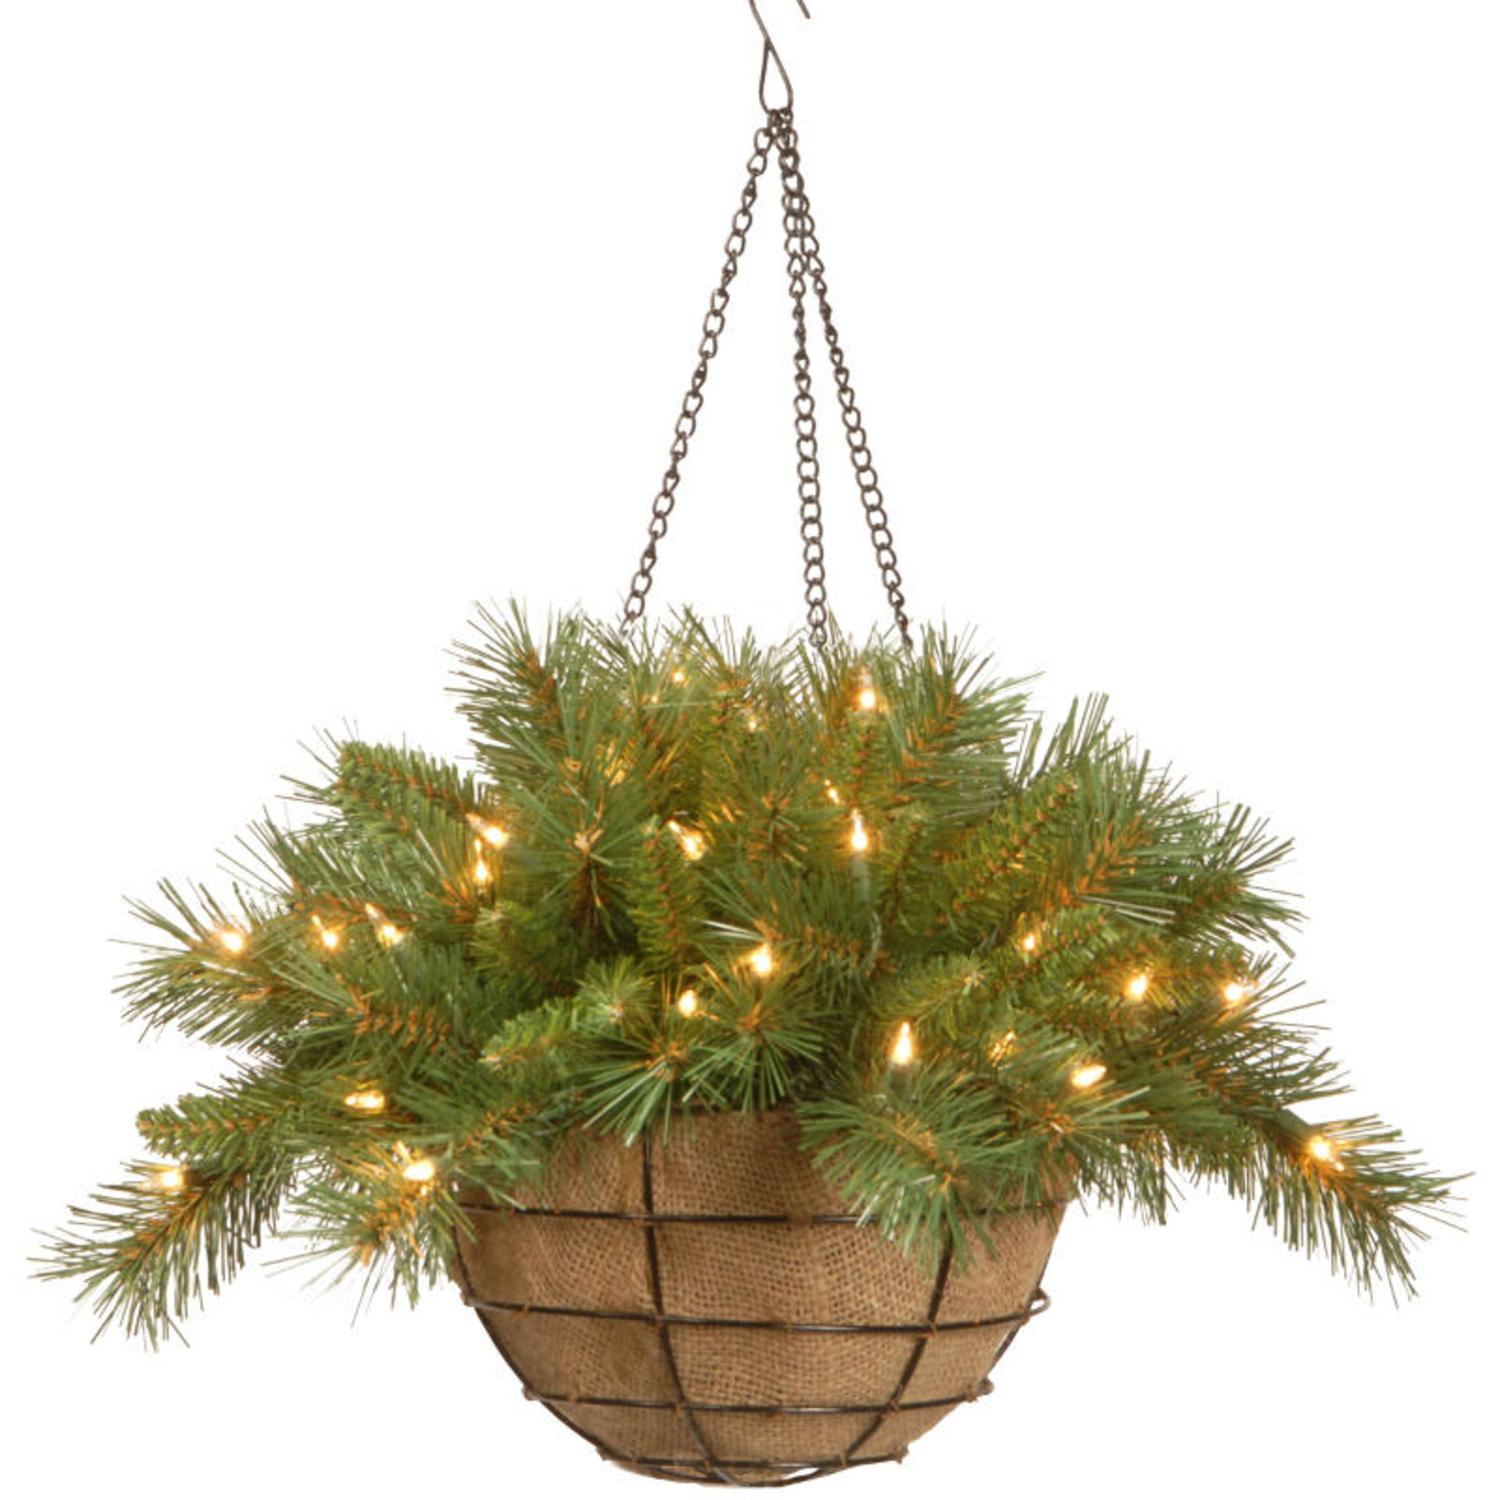 Christmas Hanging Baskets With Lights.20 Pre Lit Battery Operated Tiffany Fir Artificial Christmas Hanging Basket Warm White Led Lights